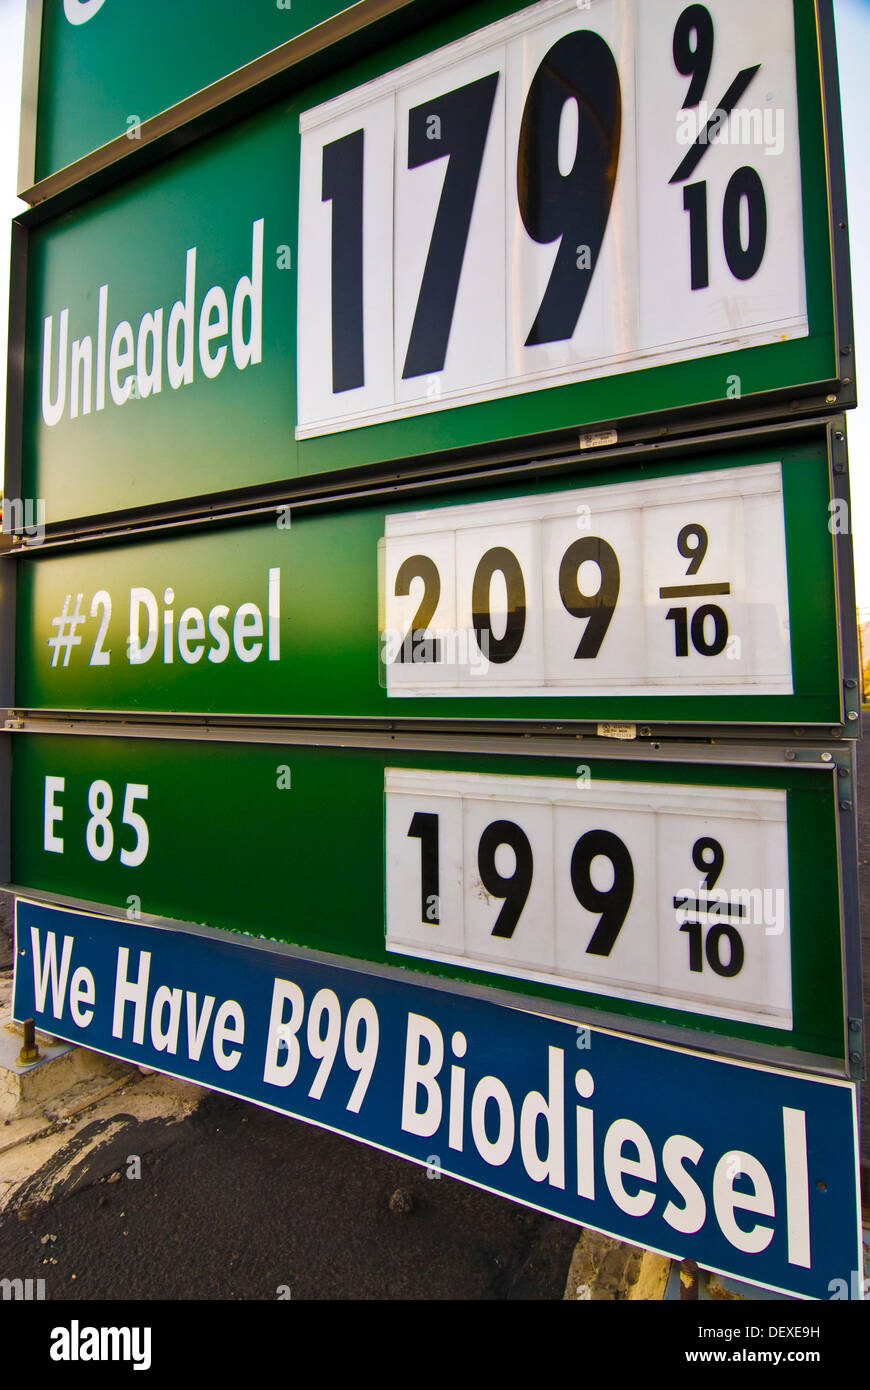 Price sign at gasoline station for 85 ethanol and biodiesel fuel for automobiles, Tucson Arizona - Stock Image